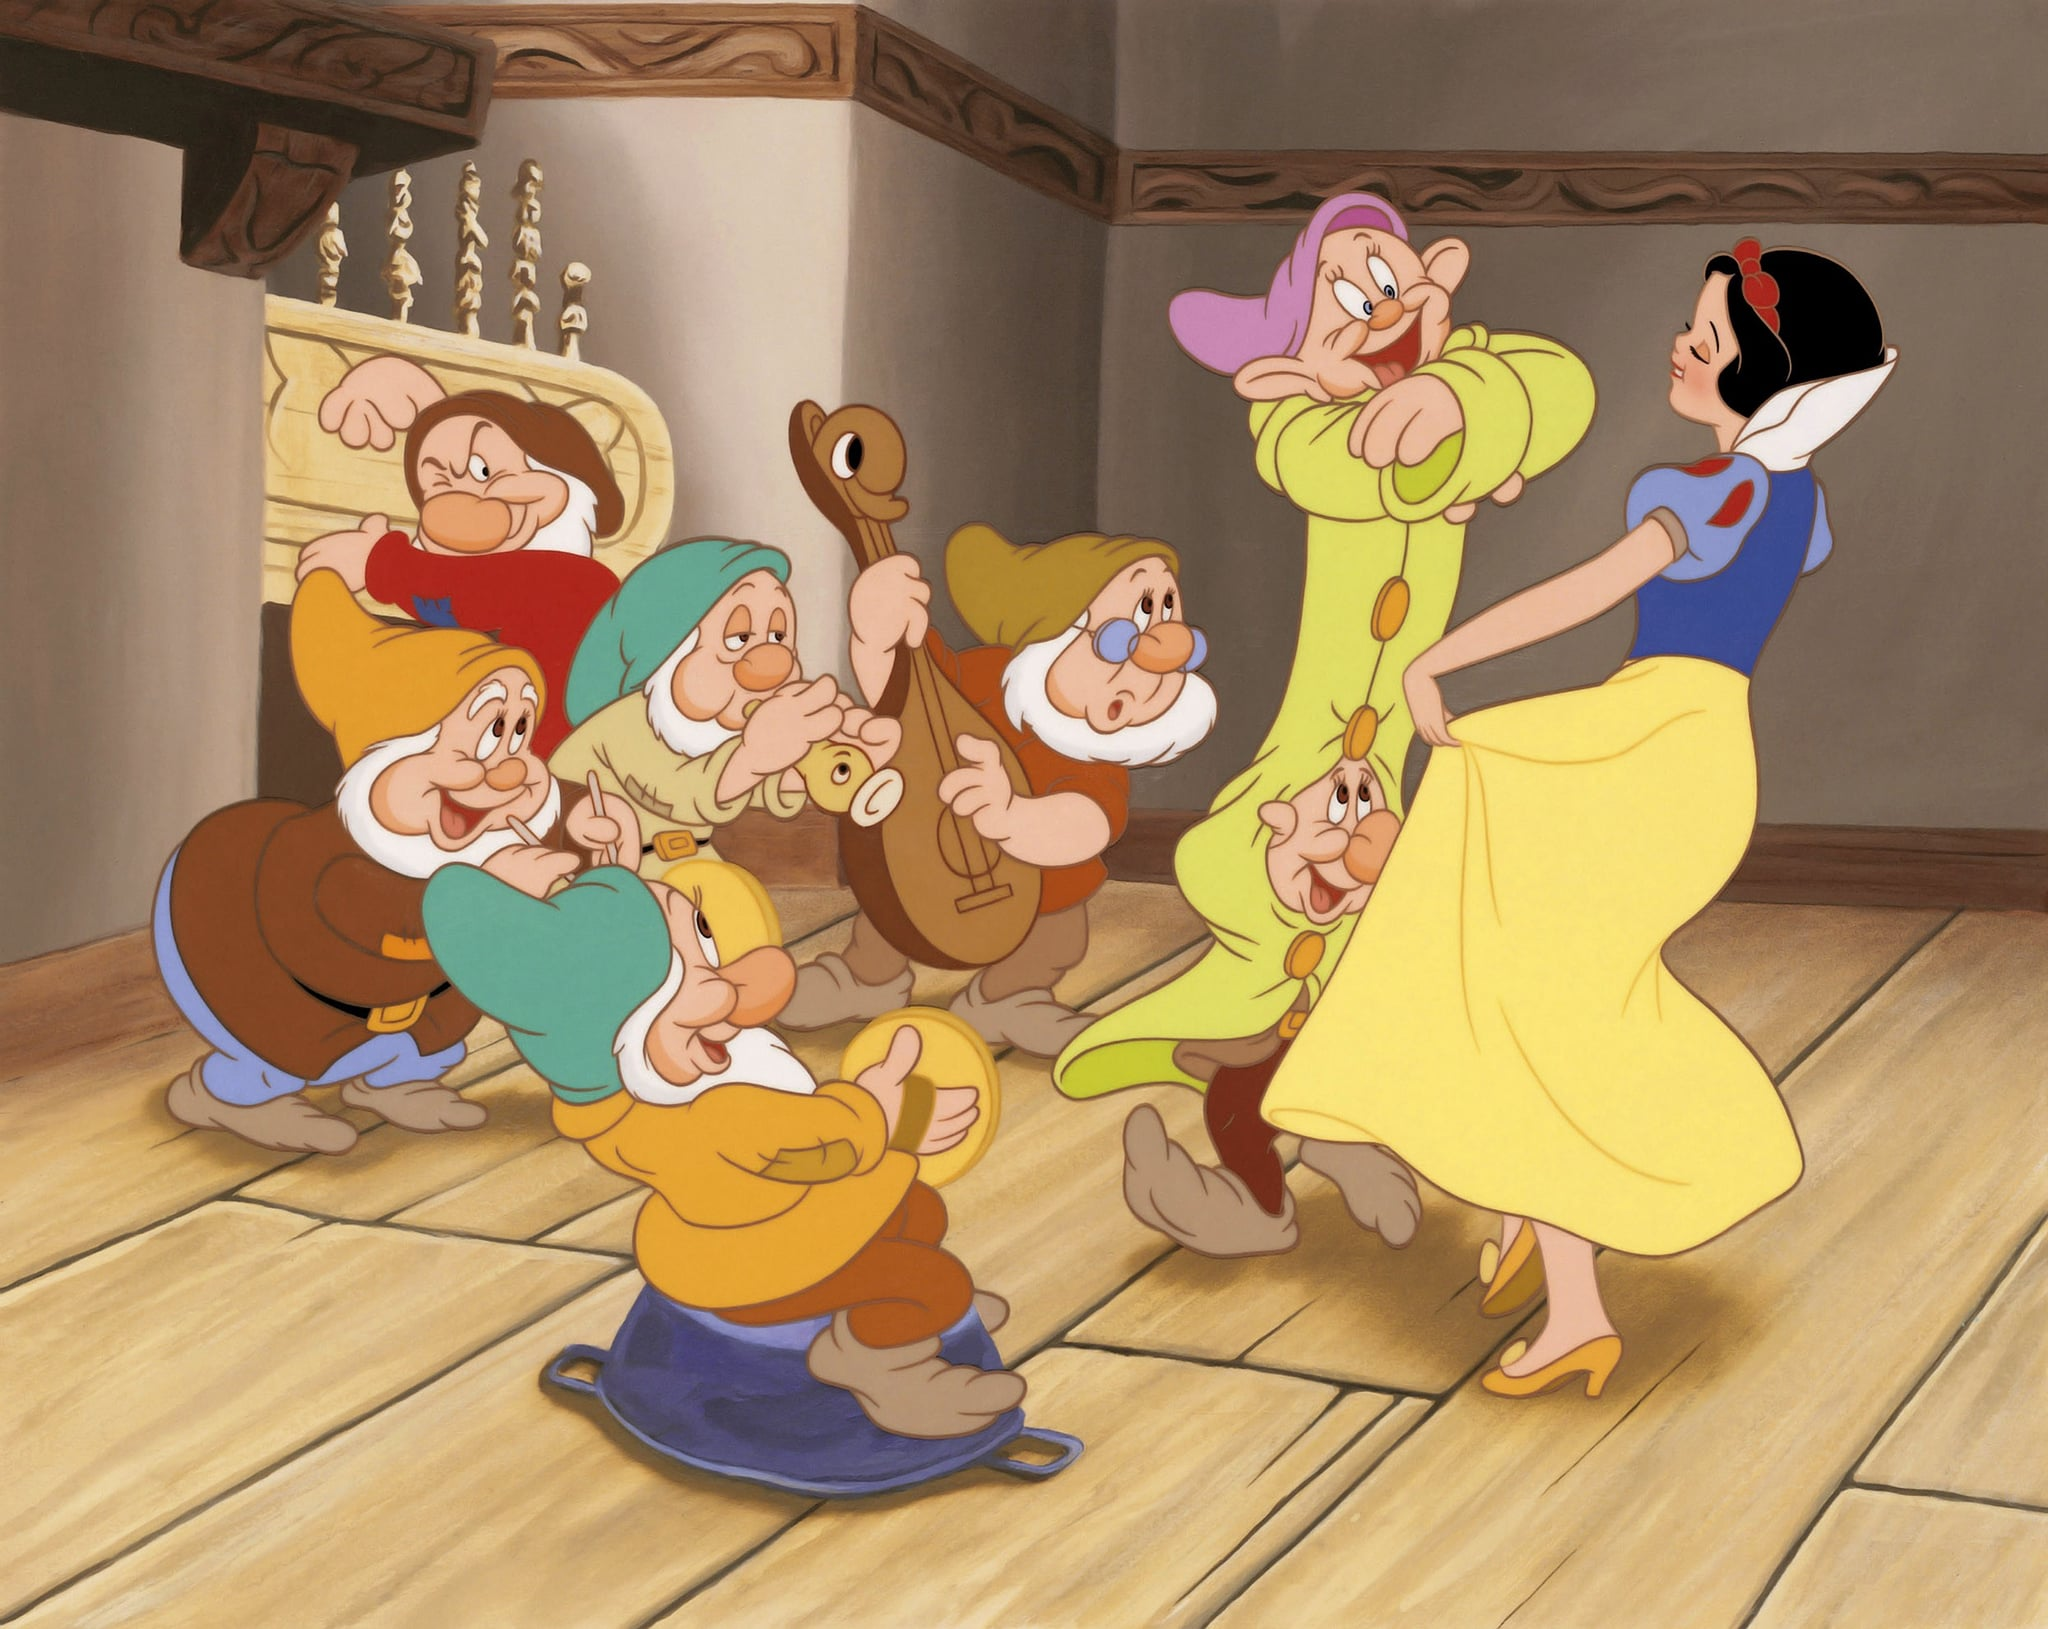 Snow White And The Seven Dwarfs 1937 The Ultimate List Of Animated Disney Movies You Need To Watch With Your Kids Popsugar Family Photo 8